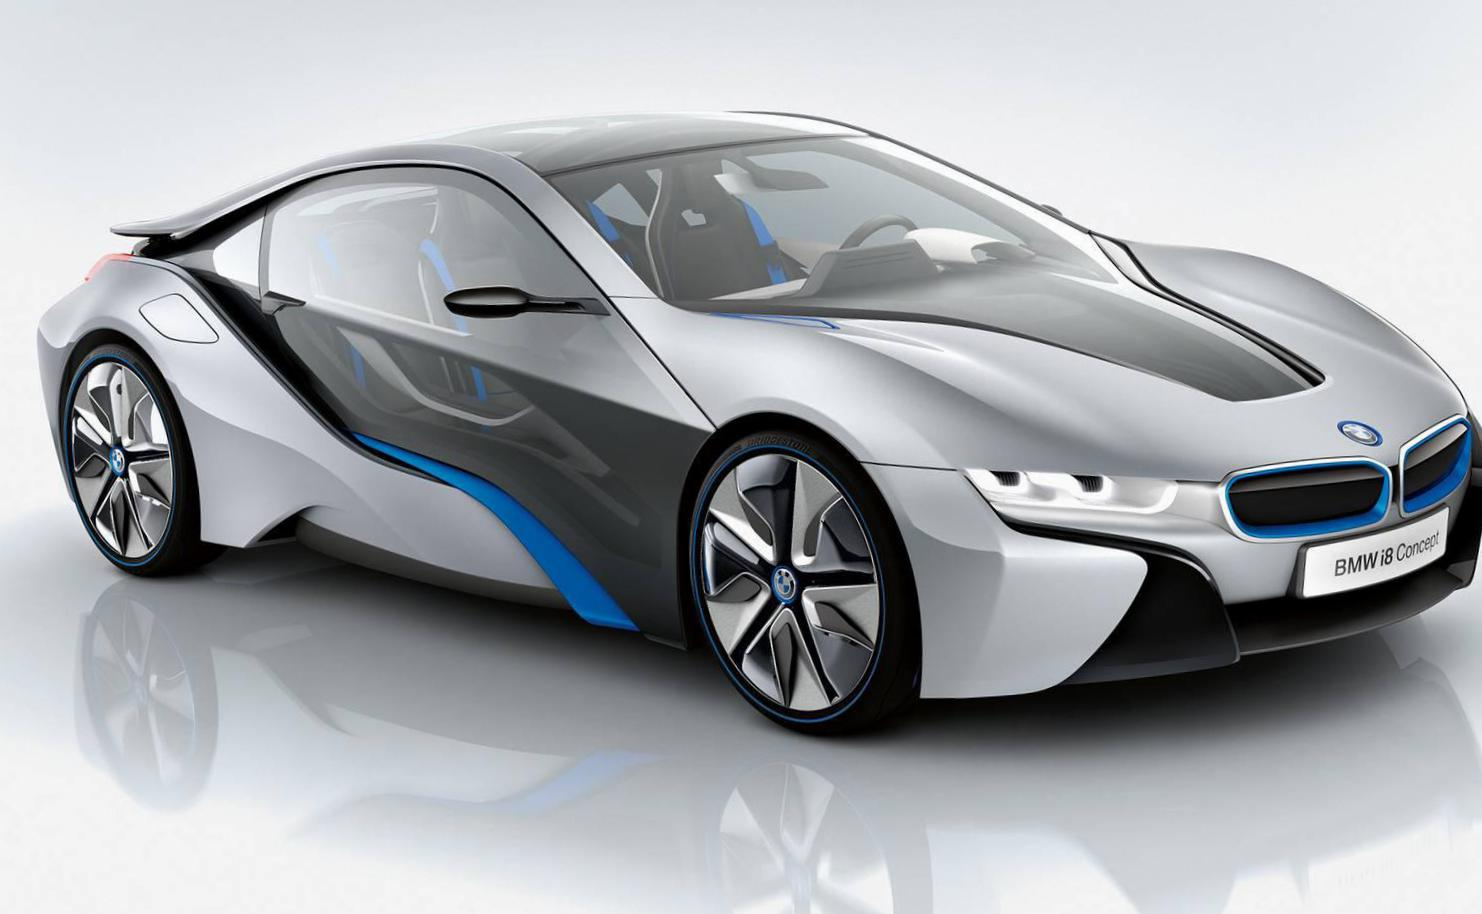 BMW i8 models hatchback